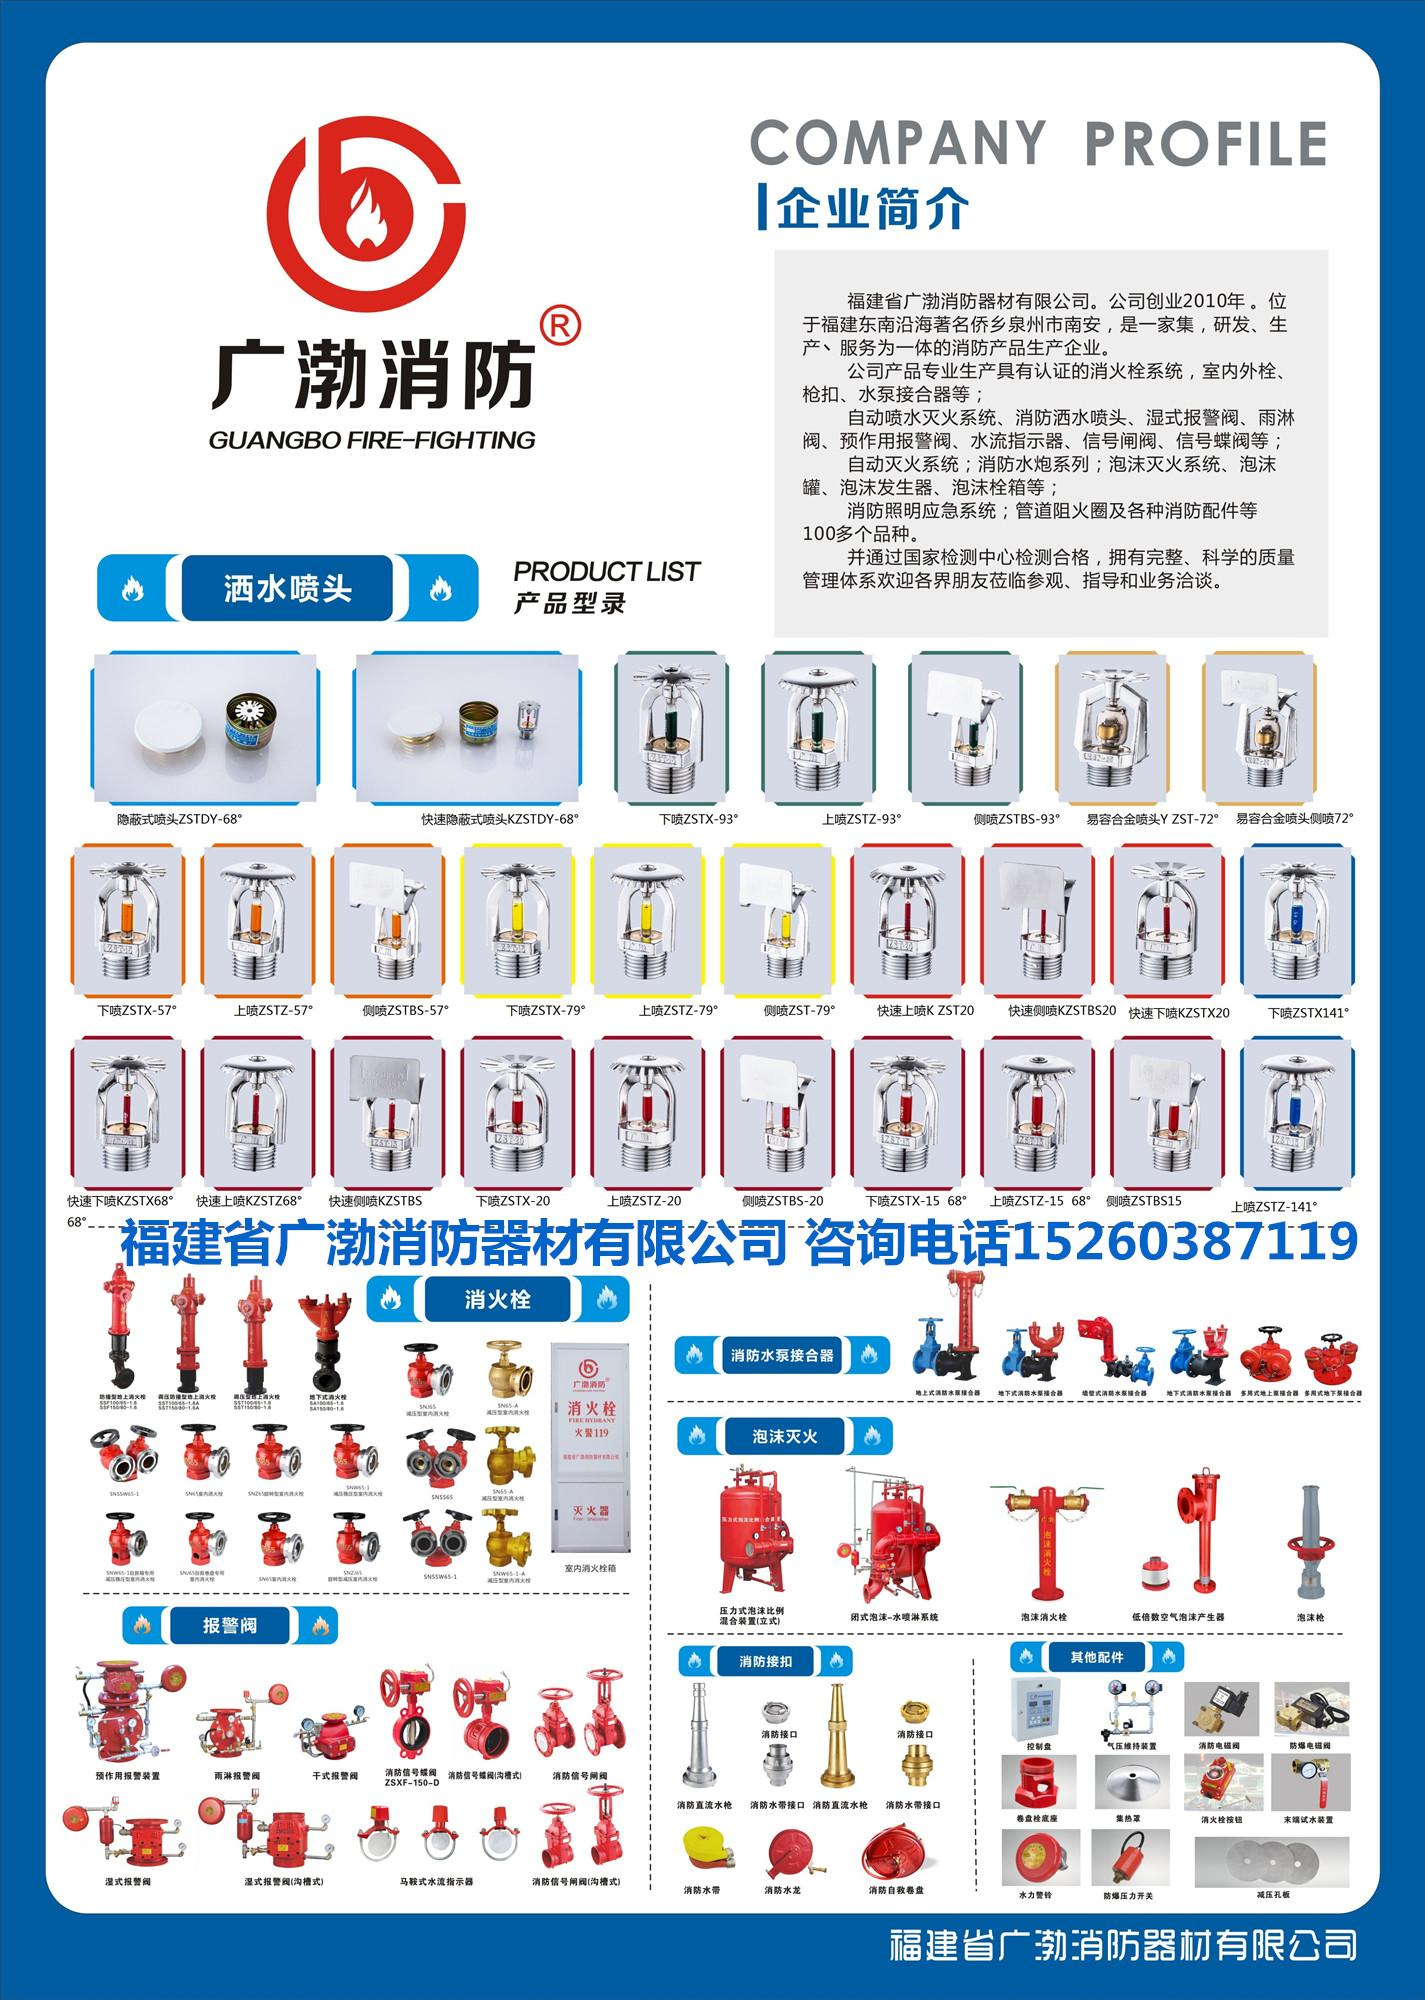 DRY Fire Sprinkler used in freezer cold storage warehouse Fujian Guangbo Brand 4